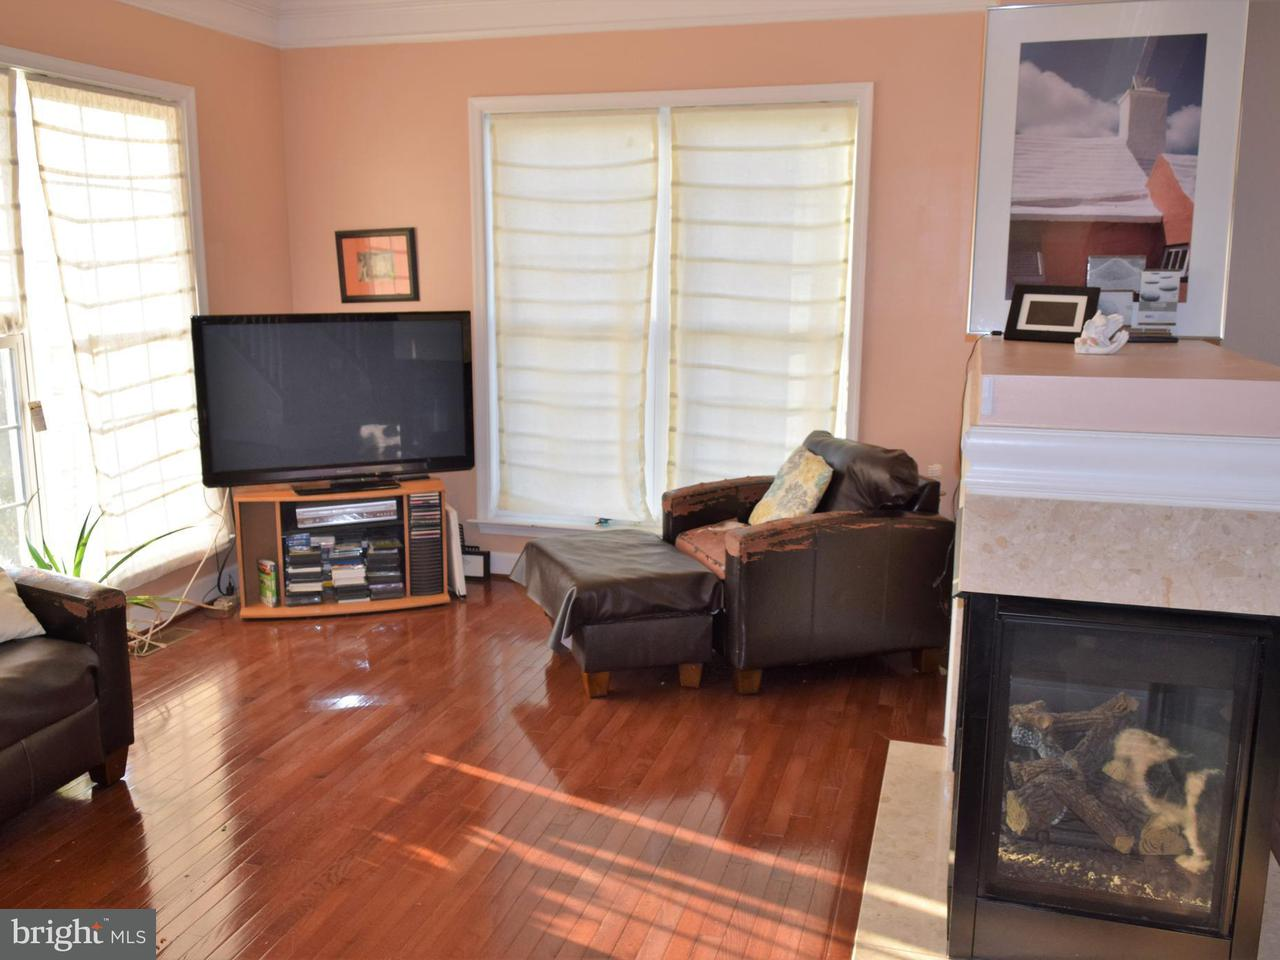 Additional photo for property listing at 3234 Robert Clifton Weaver Way Ne 3234 Robert Clifton Weaver Way Ne Washington, District Of Columbia 20018 Verenigde Staten